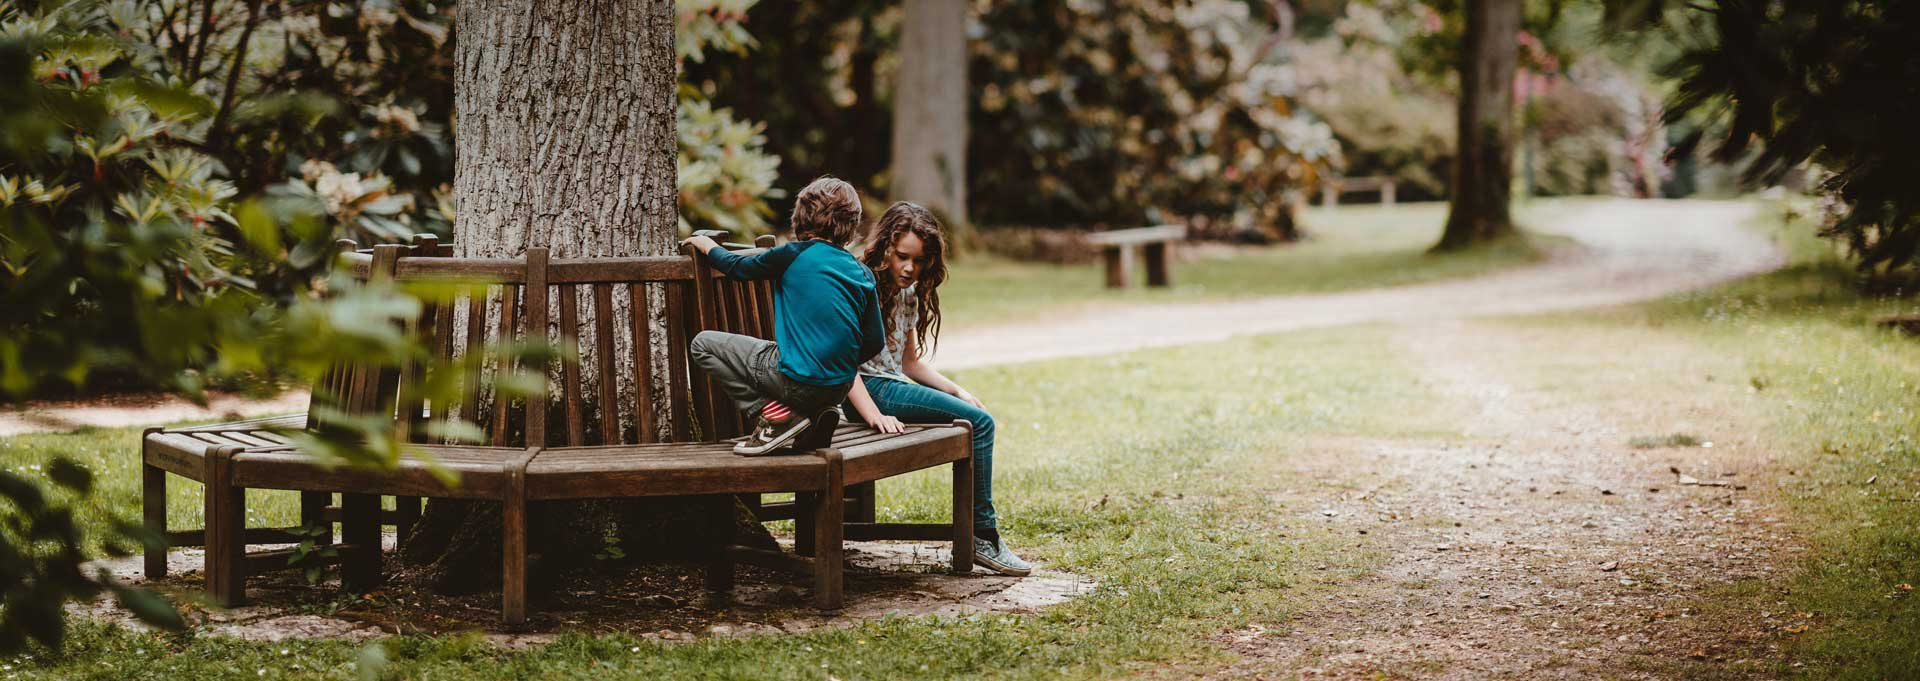 boy and girl sitting on bench surrounding tree in park